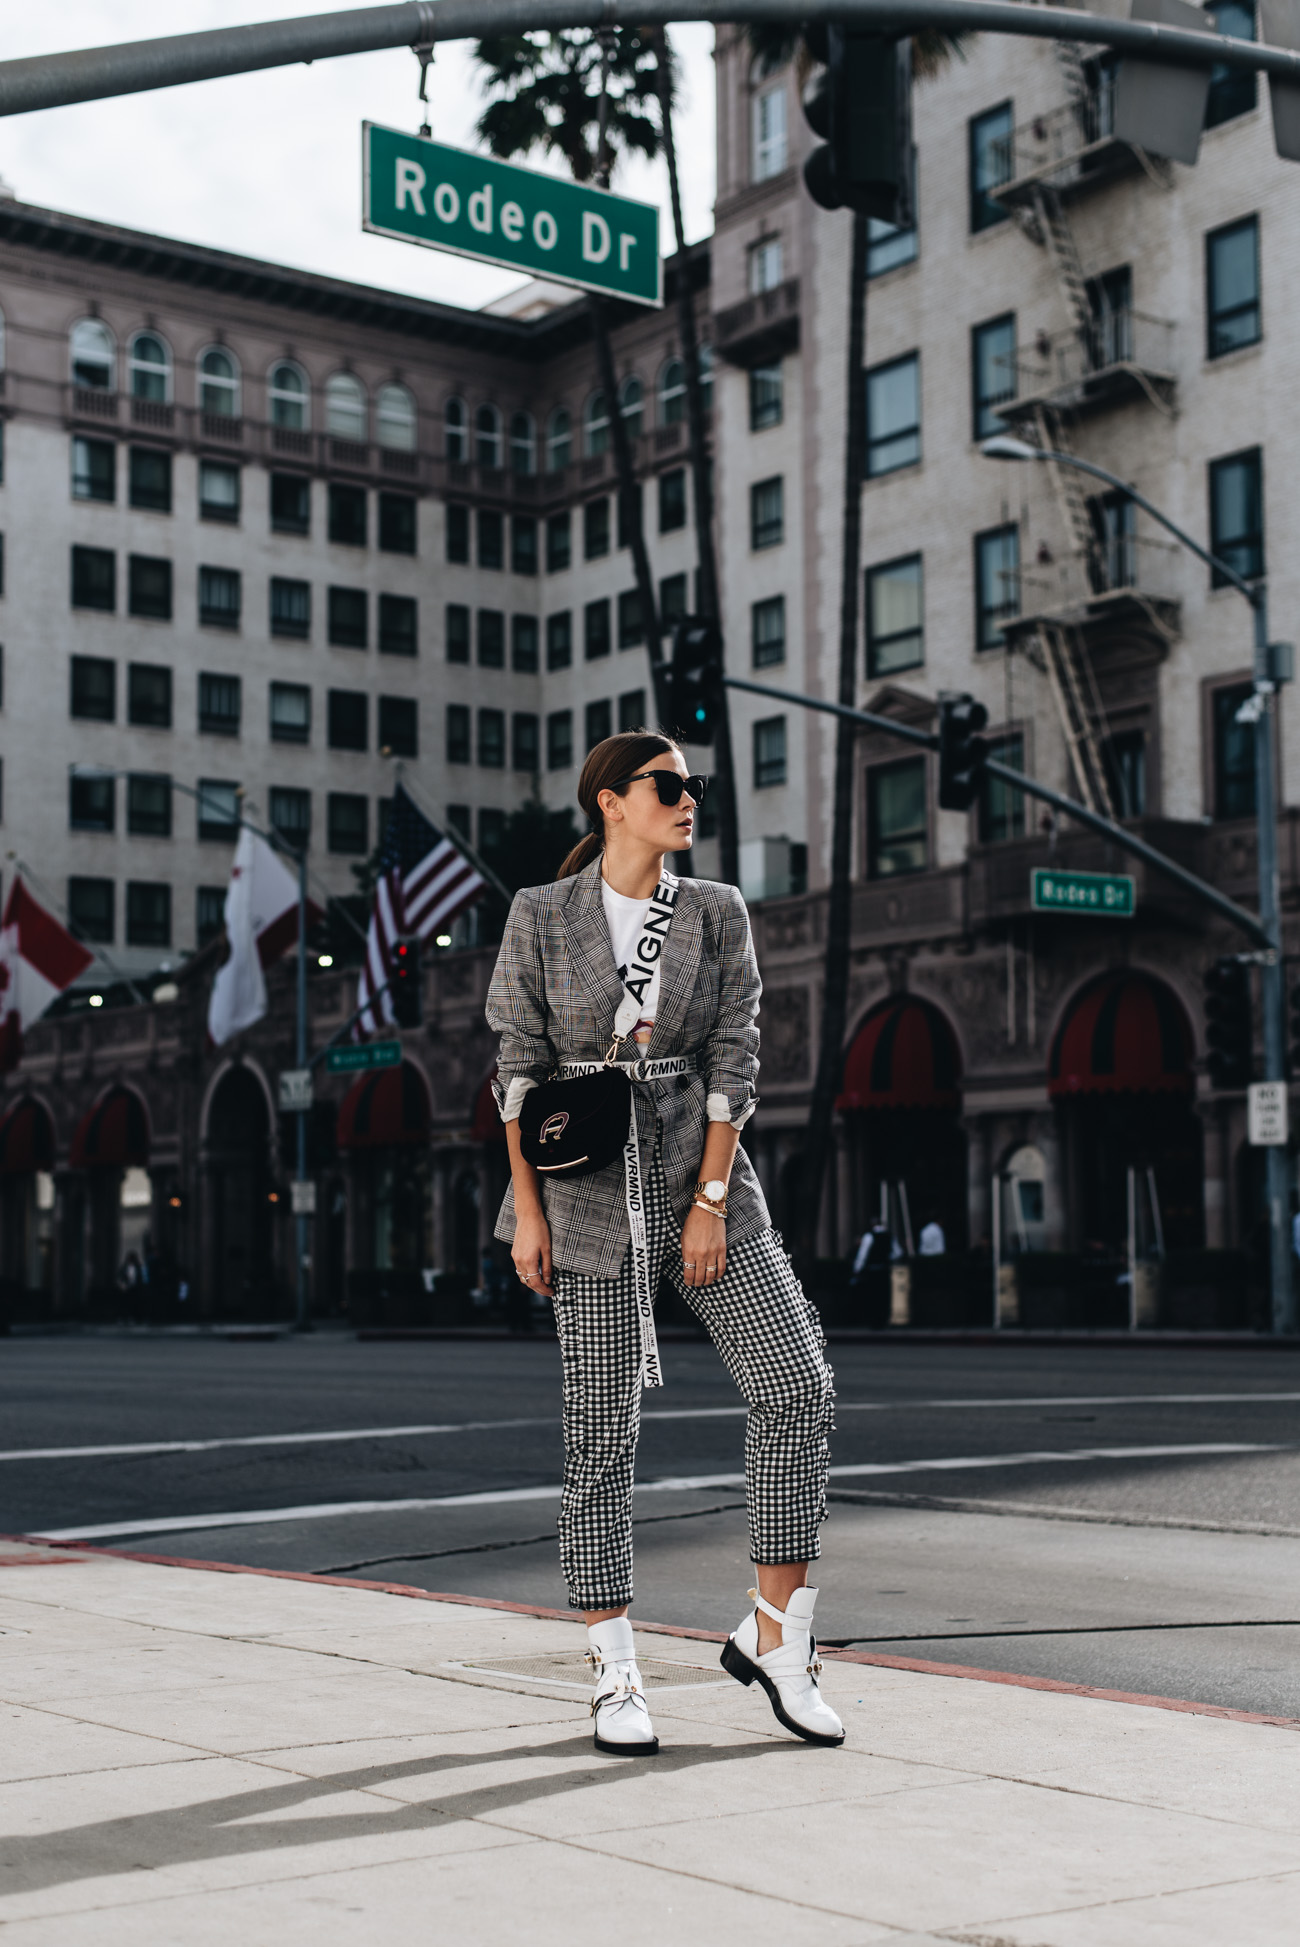 Streetstyle-Muster-All-Over-Look-Blazer-Hose-glencheck-karo-rodeo-drive-los-angeles-balenciaga-ceinture-cut-out-boots-nina-schwichtenberg-fashiioncarpet